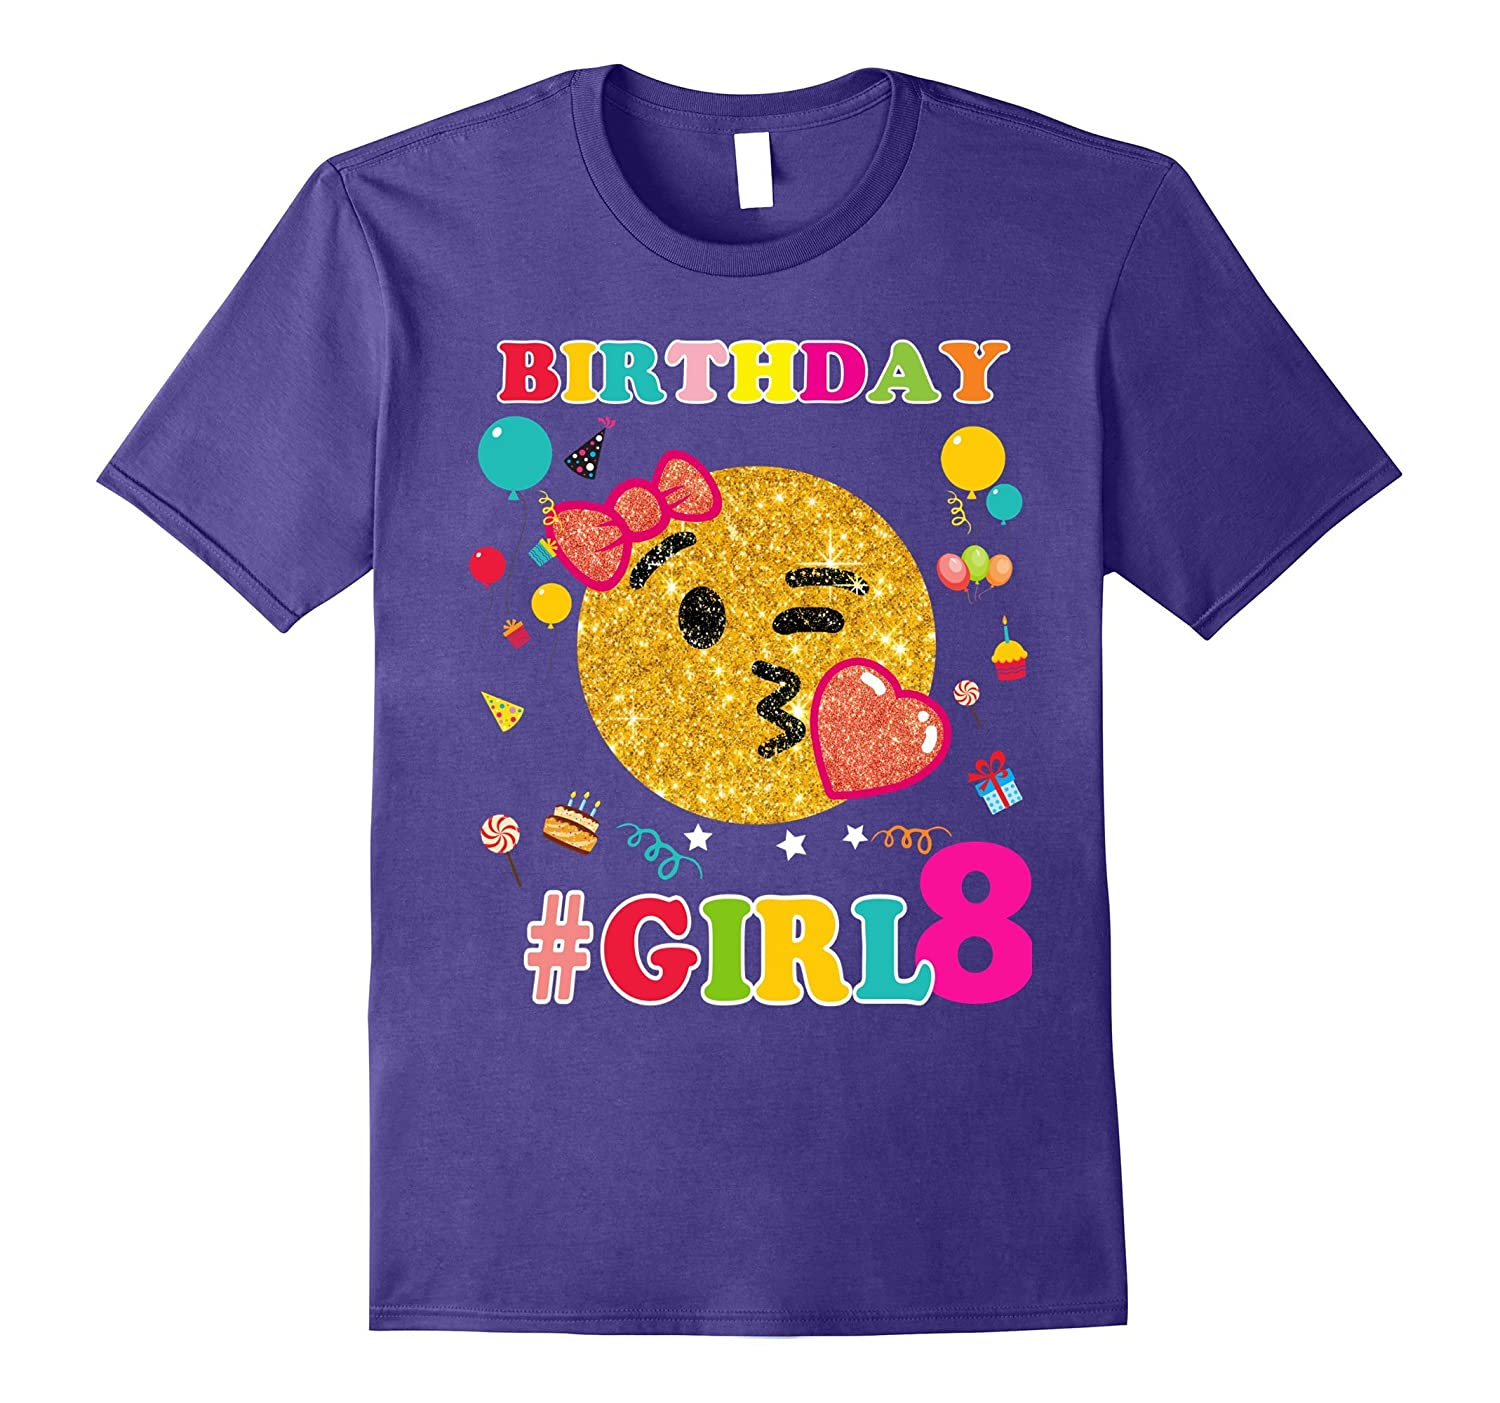 8th Birthday Girl Shirt Emoji Birthday-Art